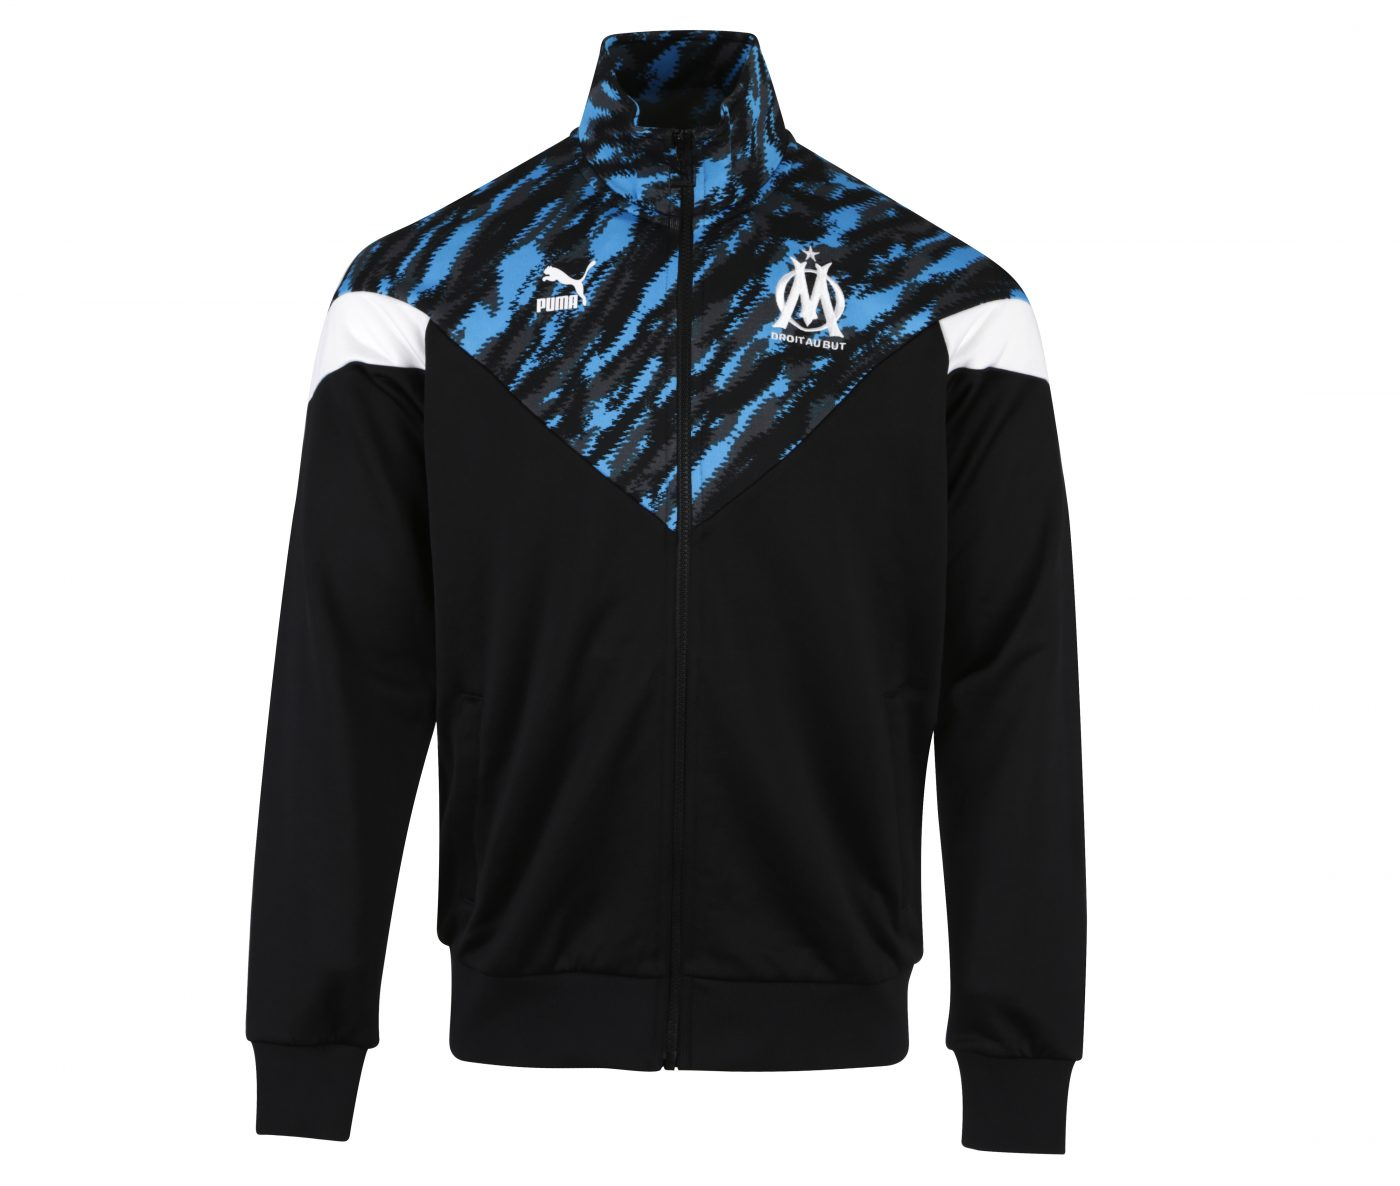 collection-iconic-om-puma-sportstyle-packshot-1